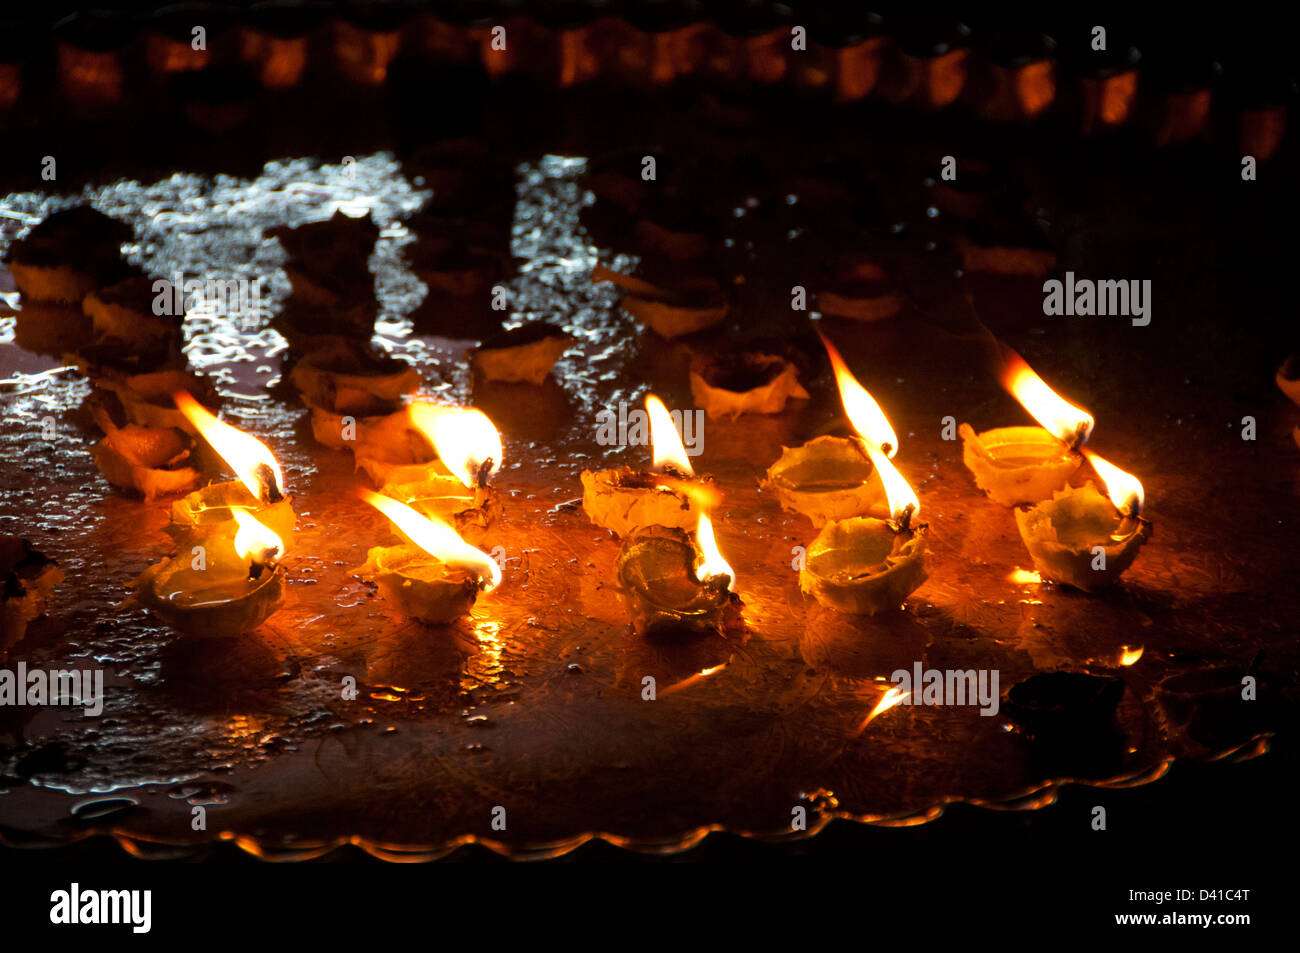 Lit oil lamps made of lemon - Stock Image